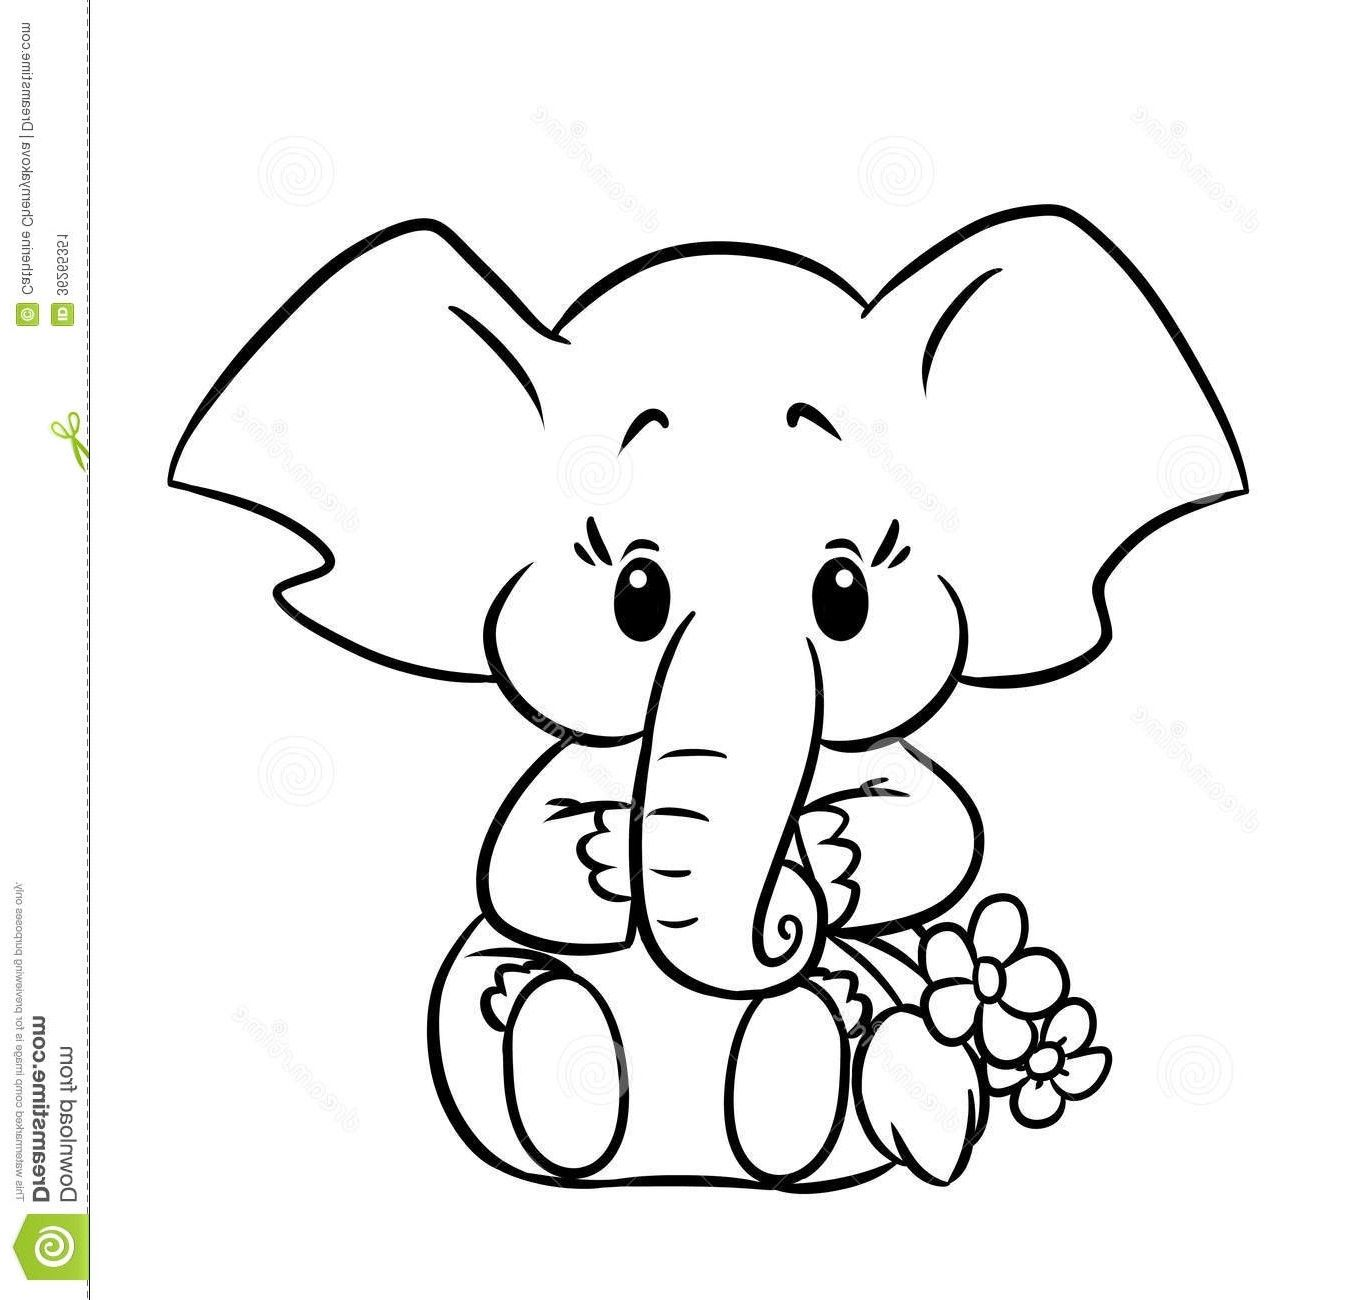 Cute Baby Elephant Coloring Pages 11 5b37f2798c662 Within Cute Elephant Coloring Pages Elephant Coloring Page Animal Coloring Pages Zoo Animal Coloring Pages